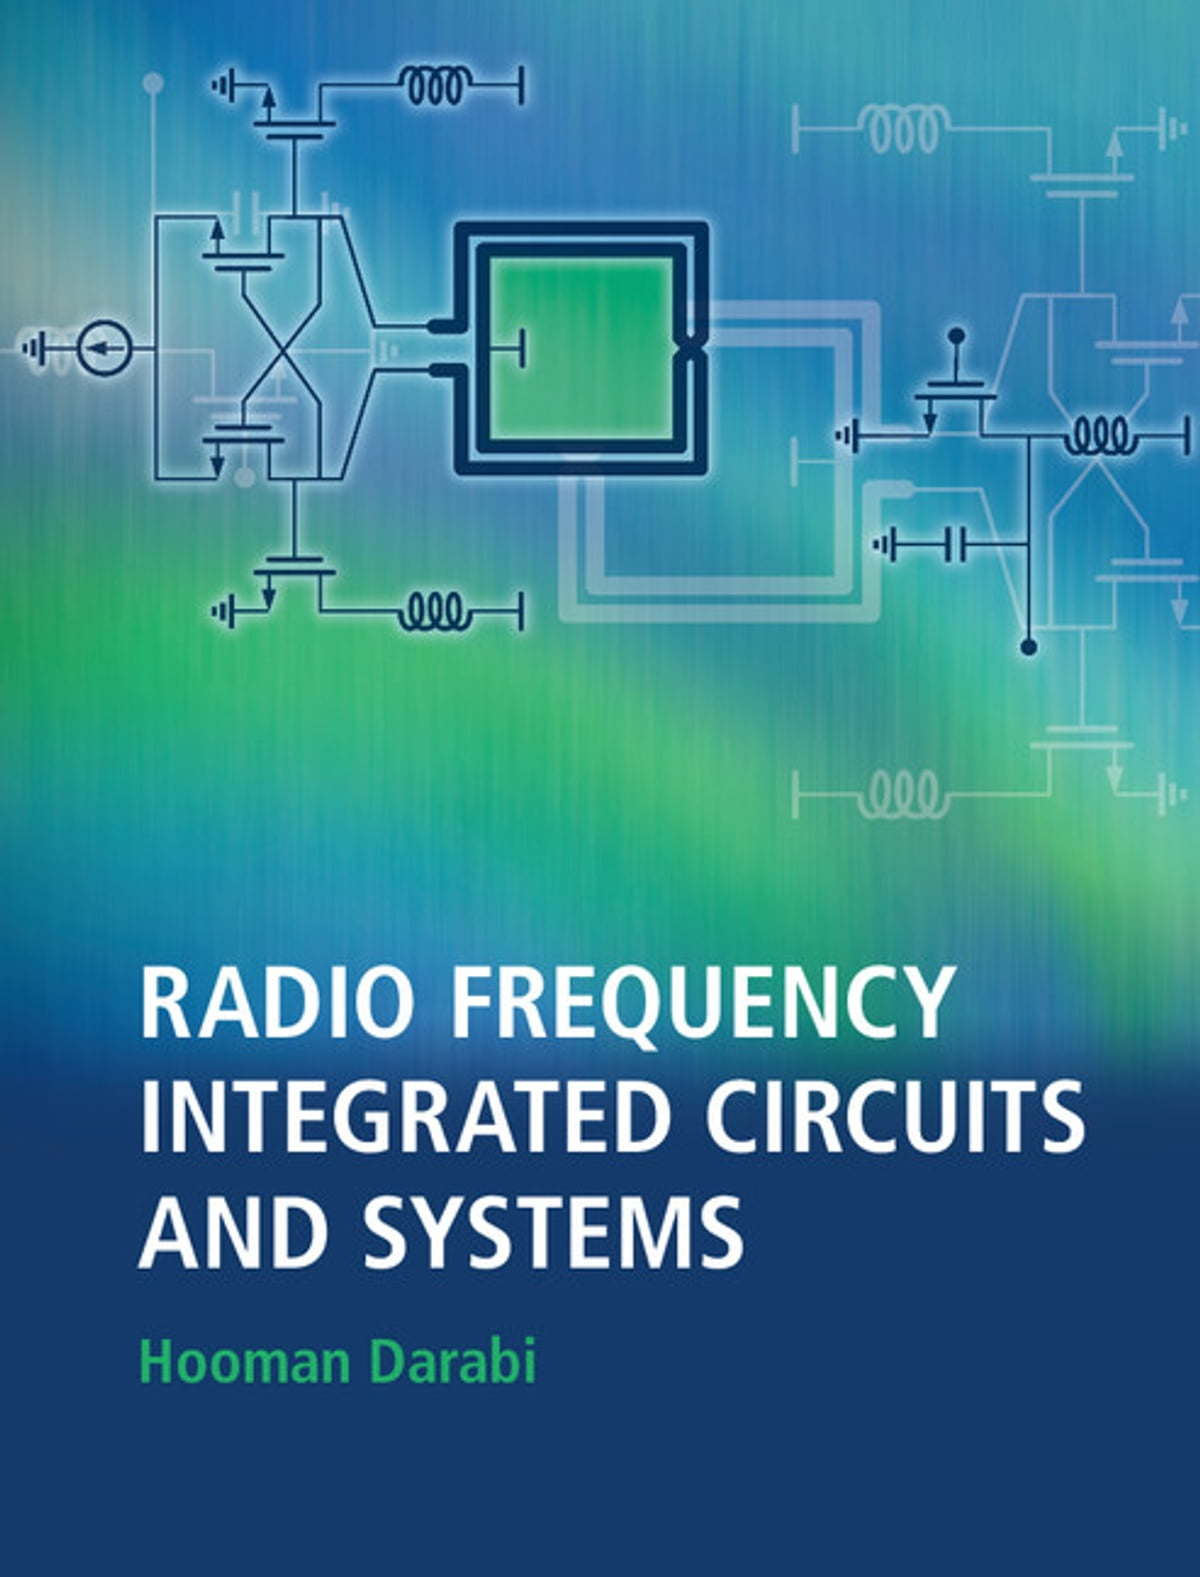 Radio Frequency Integrated Circuits And Systems Ebook By Hooman Electronic Devices Schaums Pdf Darabi 9781316287125 Rakuten Kobo